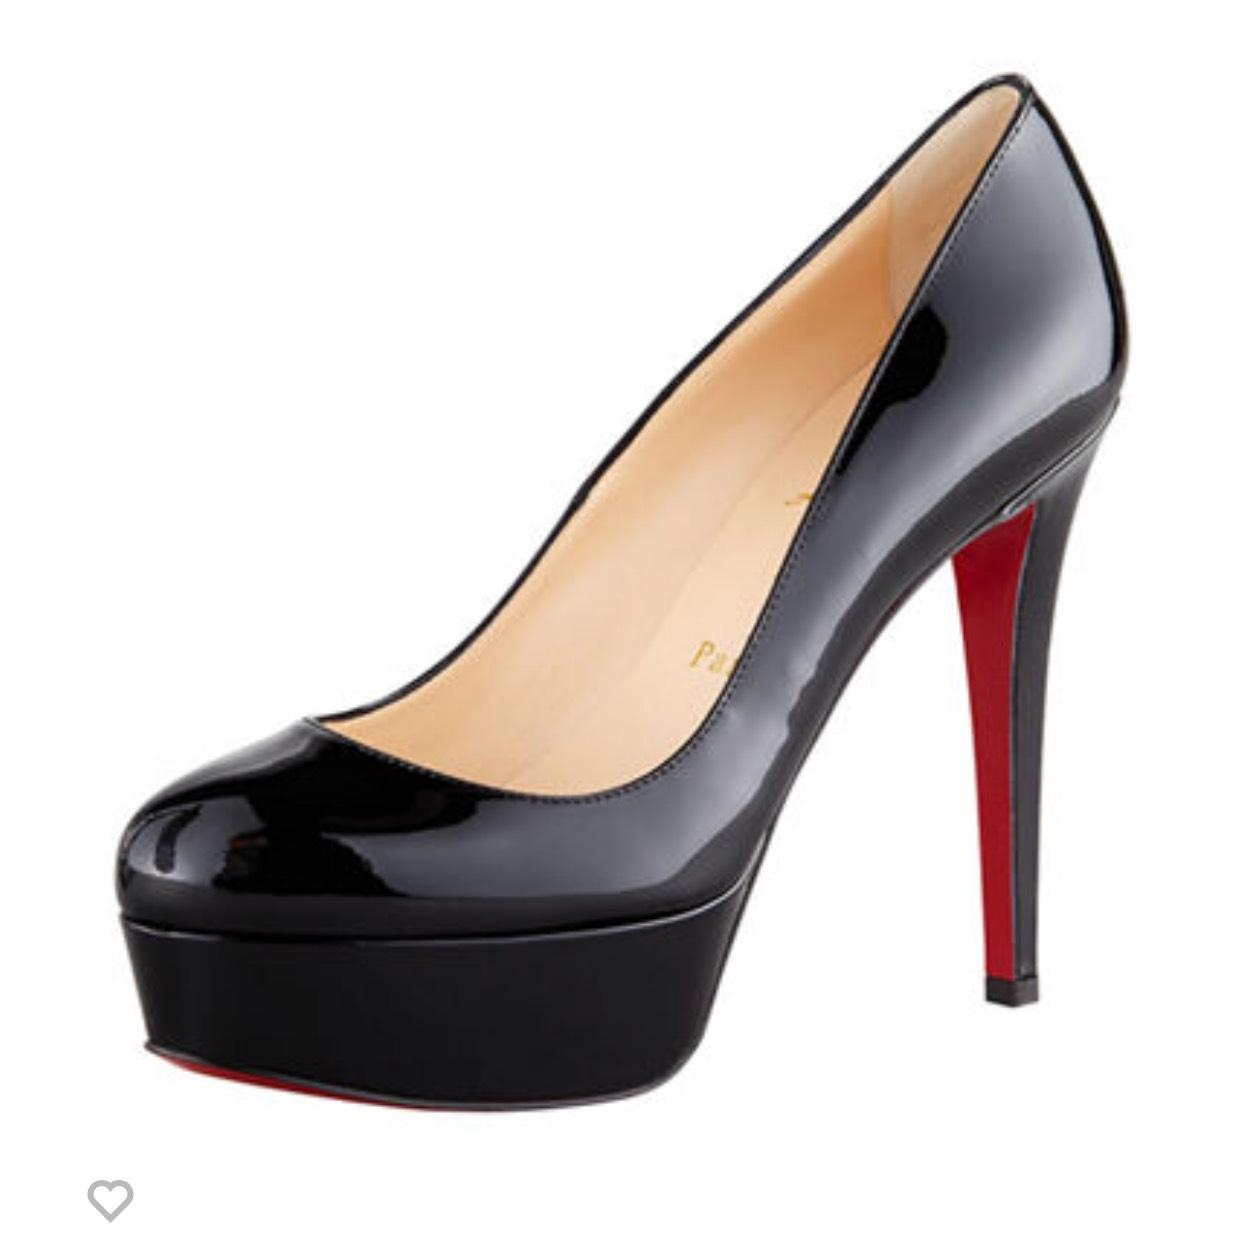 25d07918b6cb Christian Christian Christian Louboutin Black Bianca Patent Leather Red  Sole Pump Platforms Size EU 37 (